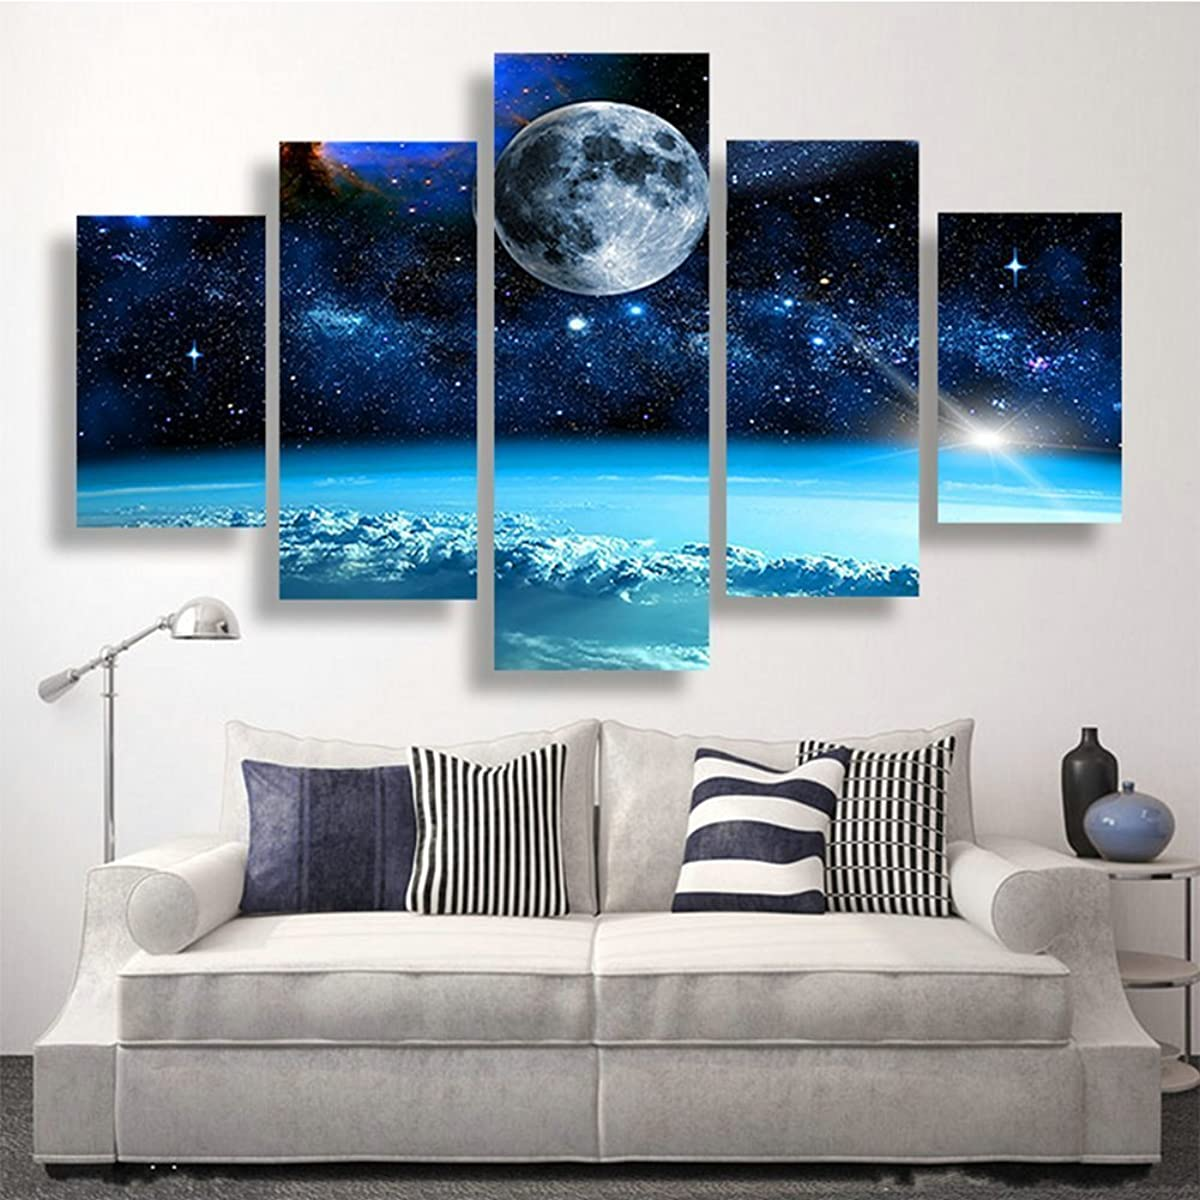 Blxecky DIY 5D Diamond Painting Cross Stitch Crafts Kit, 5 sets of splicing paintings. Home living room decoration. Starry sky